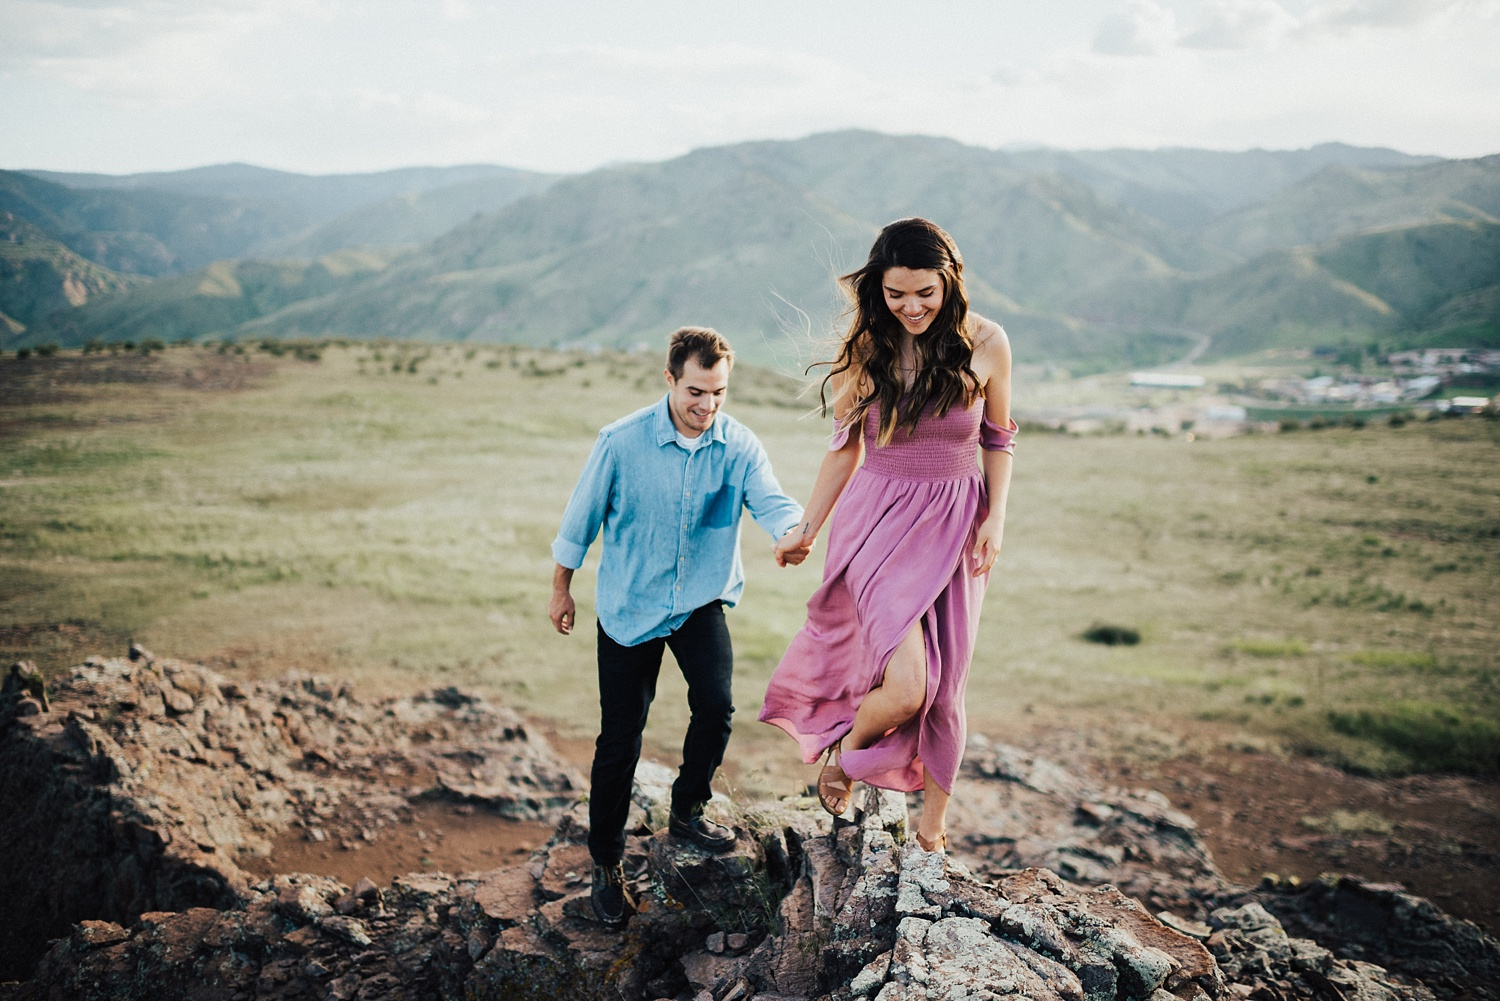 Nate_shepard_photography_colorado_denver_wedding_0441.jpg